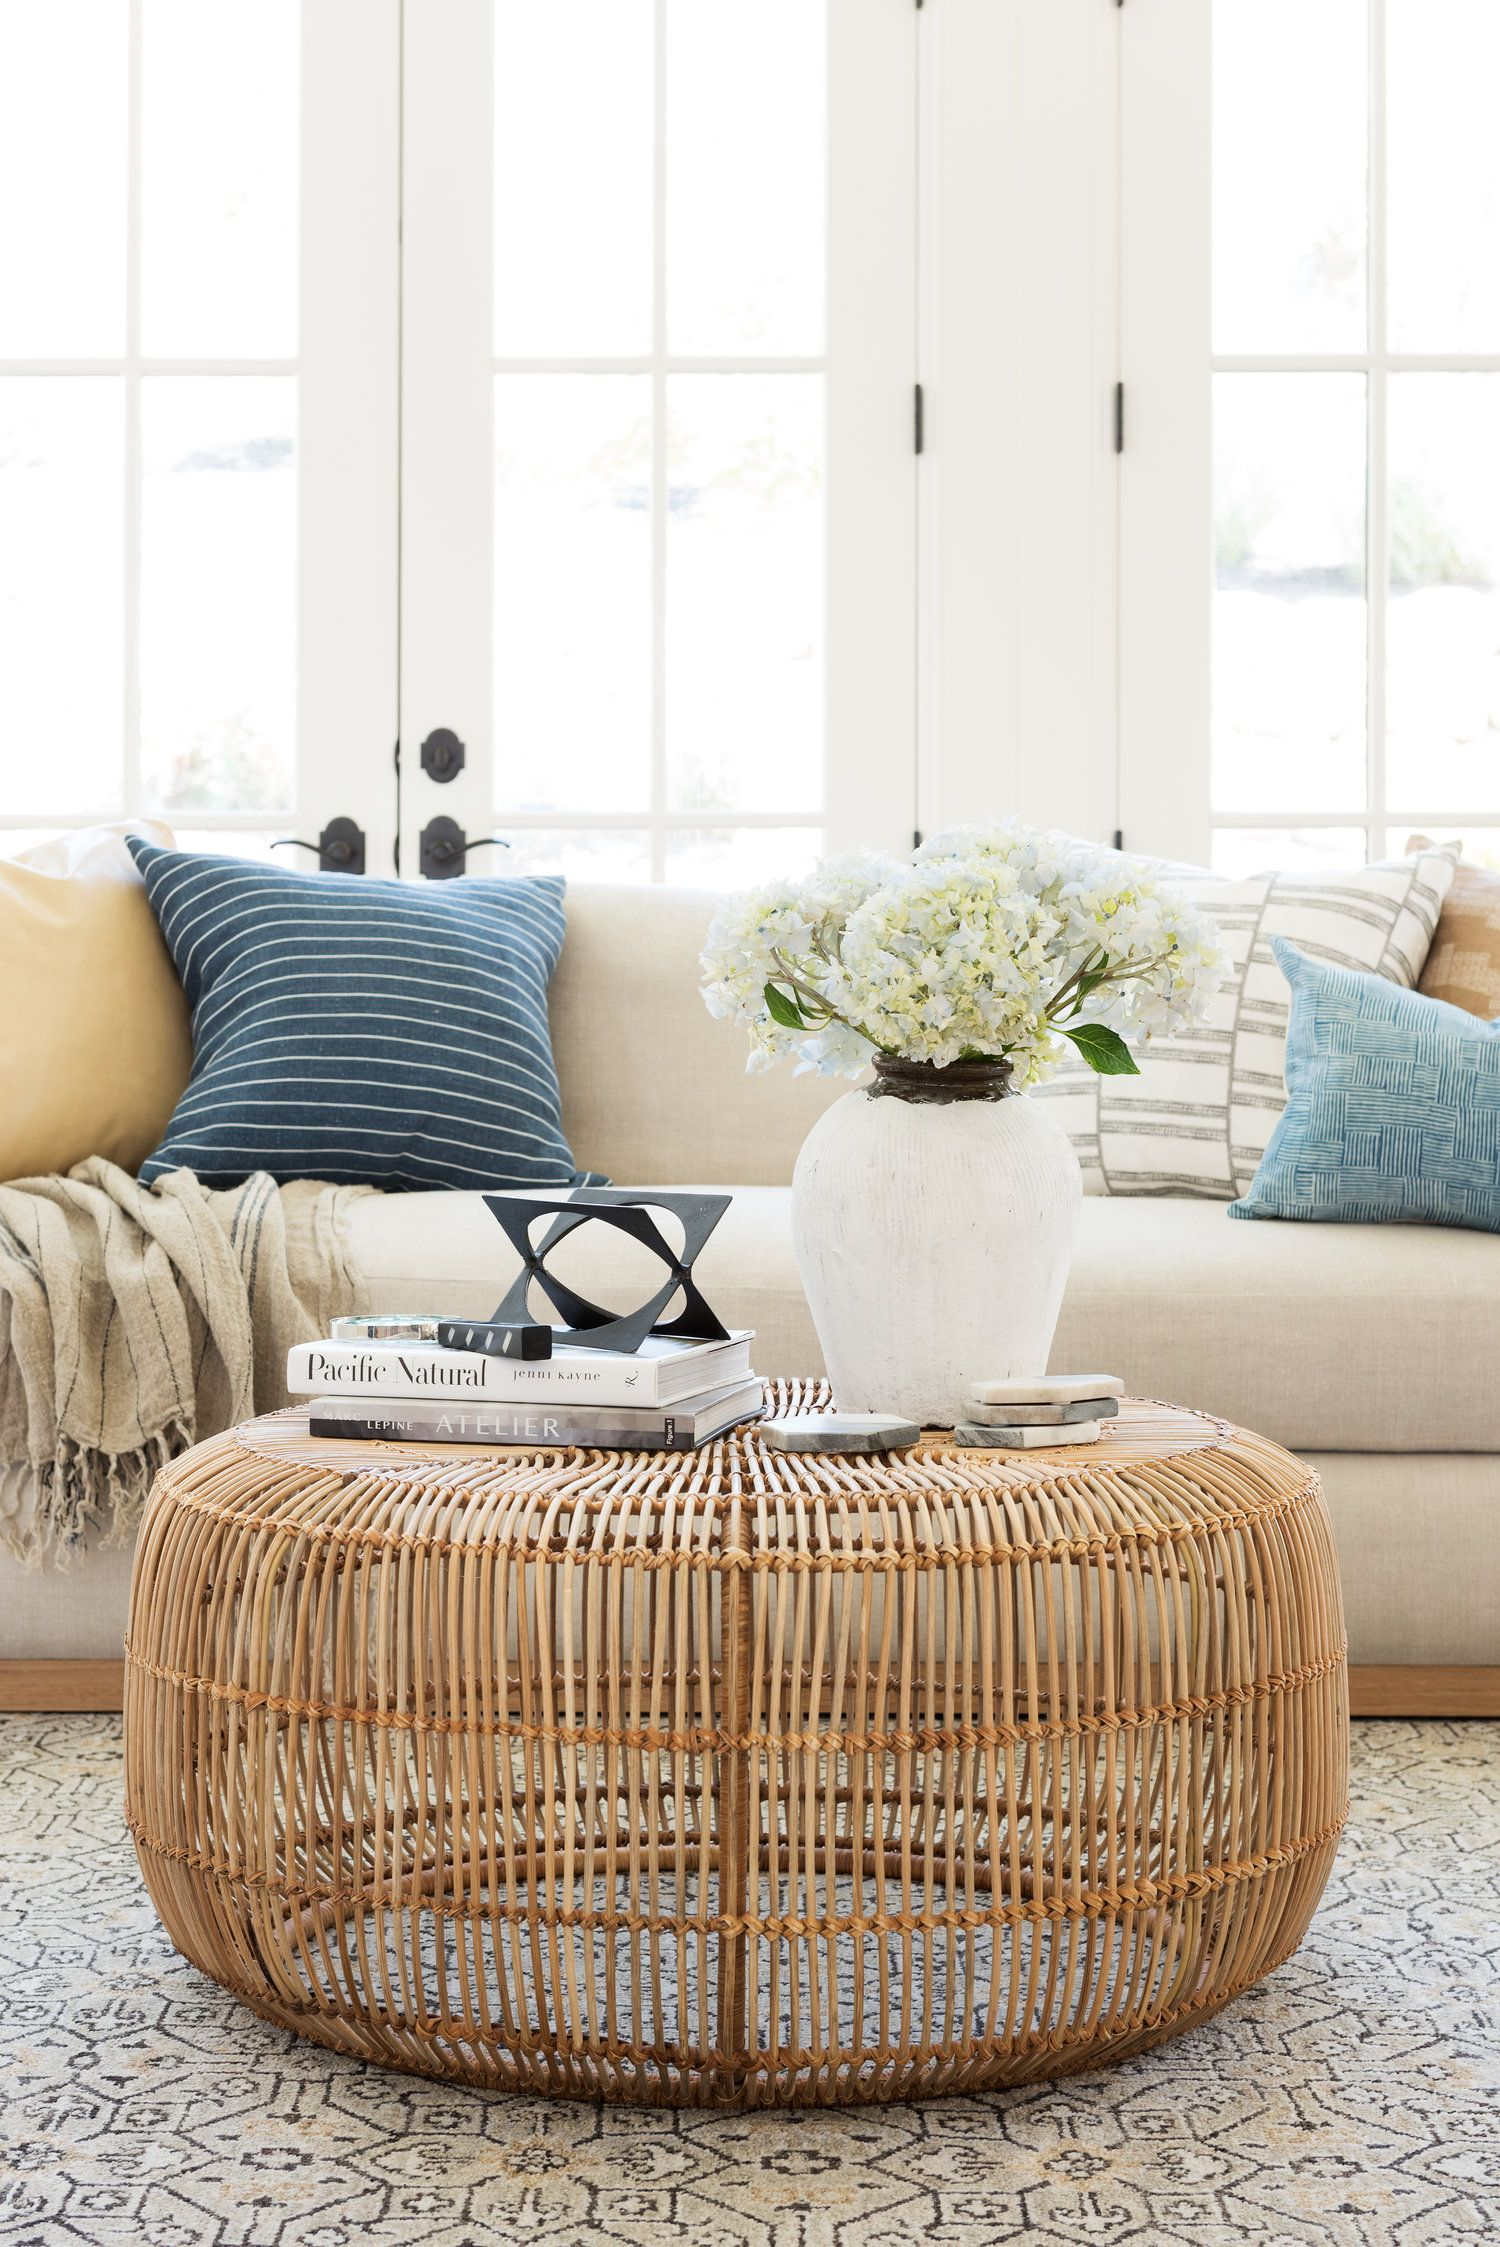 Hacks For Round Coffee Table Styling Studio Mcgee Round Coffee Table Living Room Living Room Coffee Table Round Coffee Table [ jpg ]